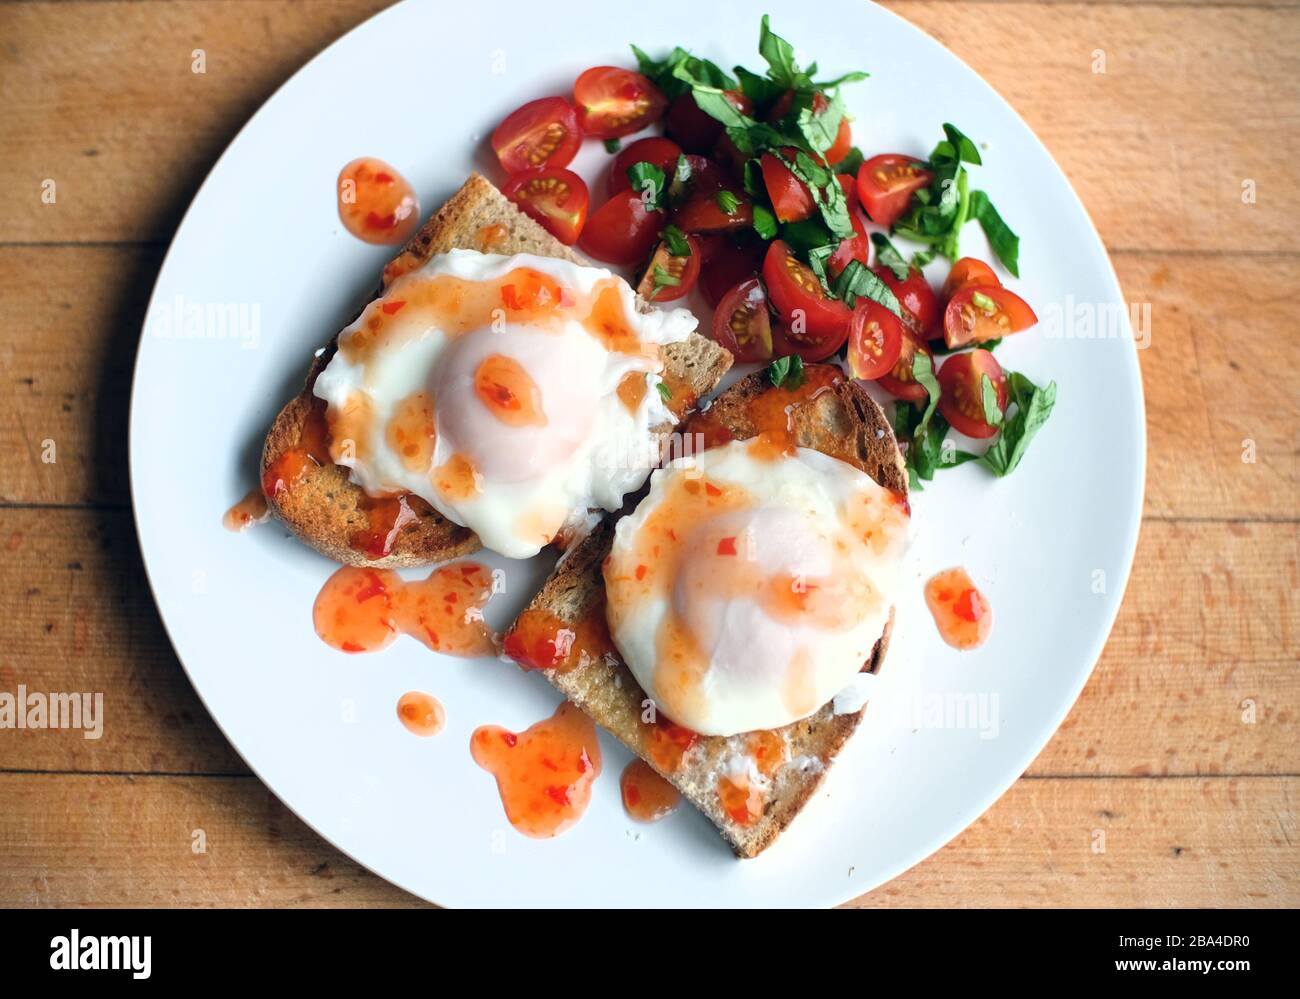 Poached eggs on toast with tomatoes, basil and sweet chilli sauce. Stock Photo